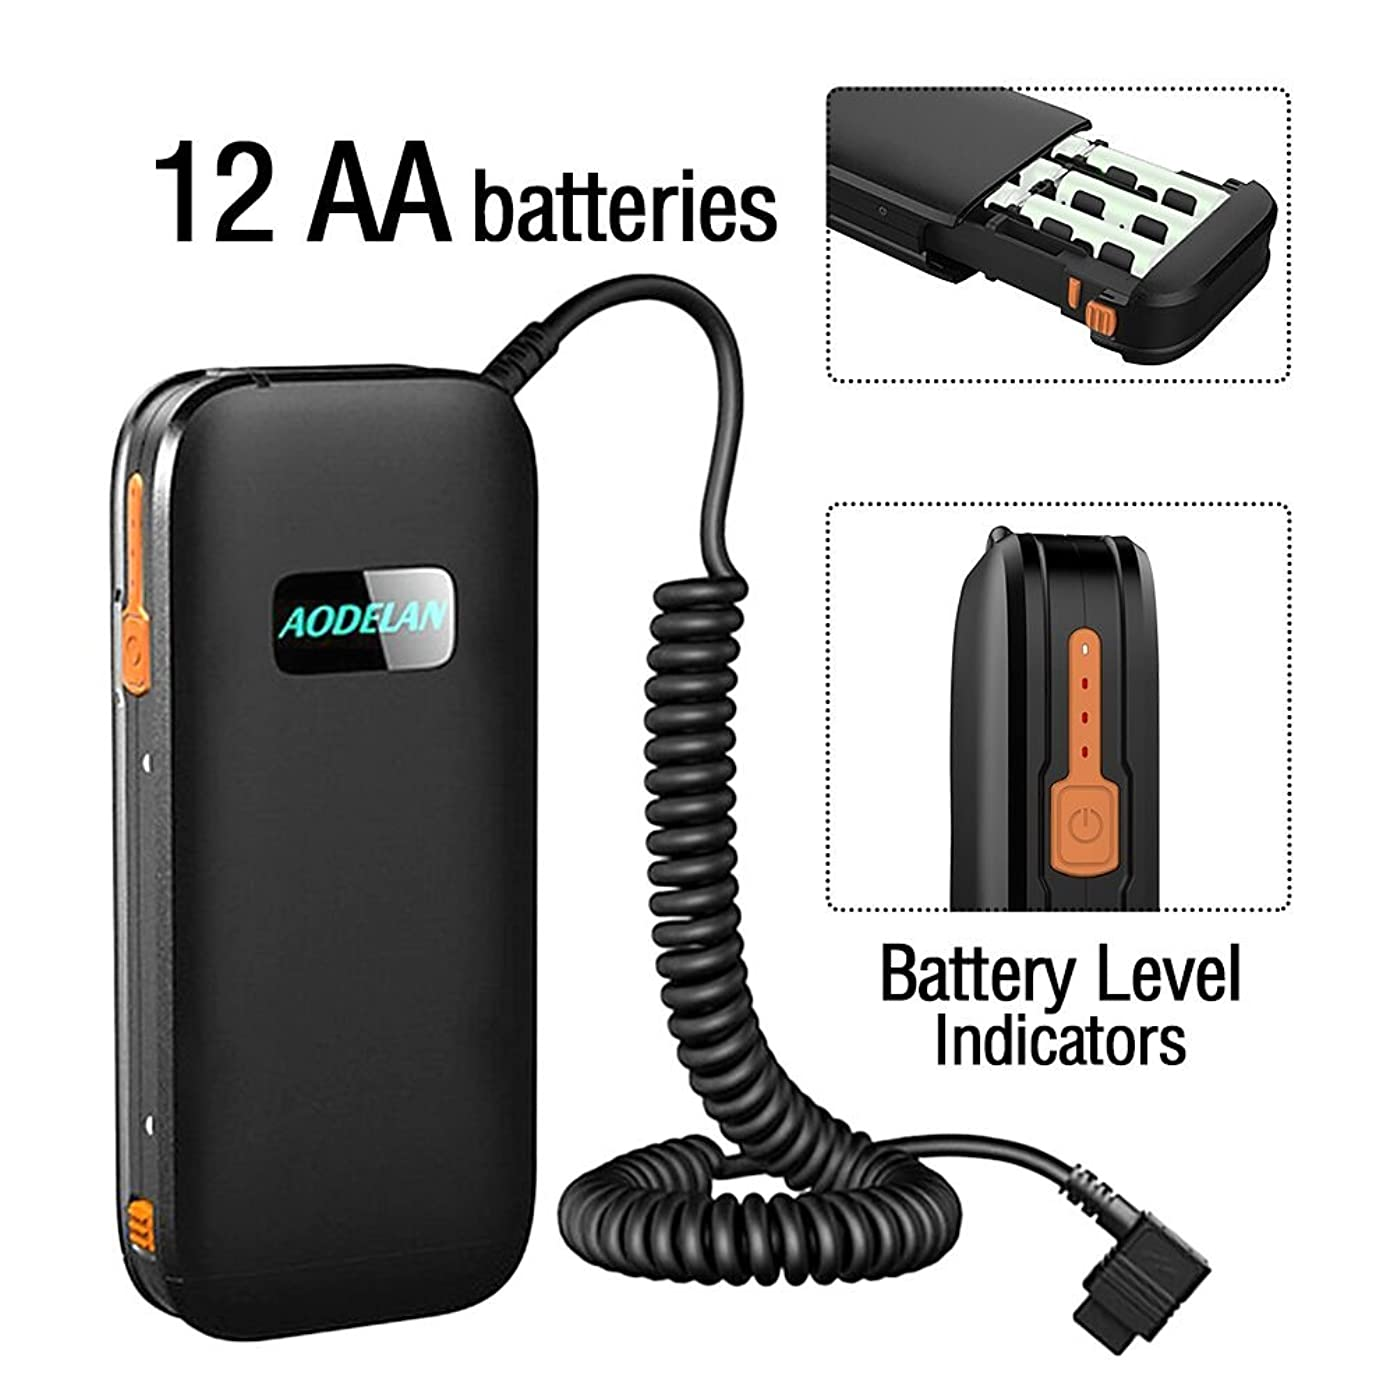 AODELAN External Flash Battery Pack Battery Power Bank for Sony HVL-F60RM/ F56AM / 58AM / F60M Replace Sony FA-EB1AM & FA-EB1 (12 AA Batteries)